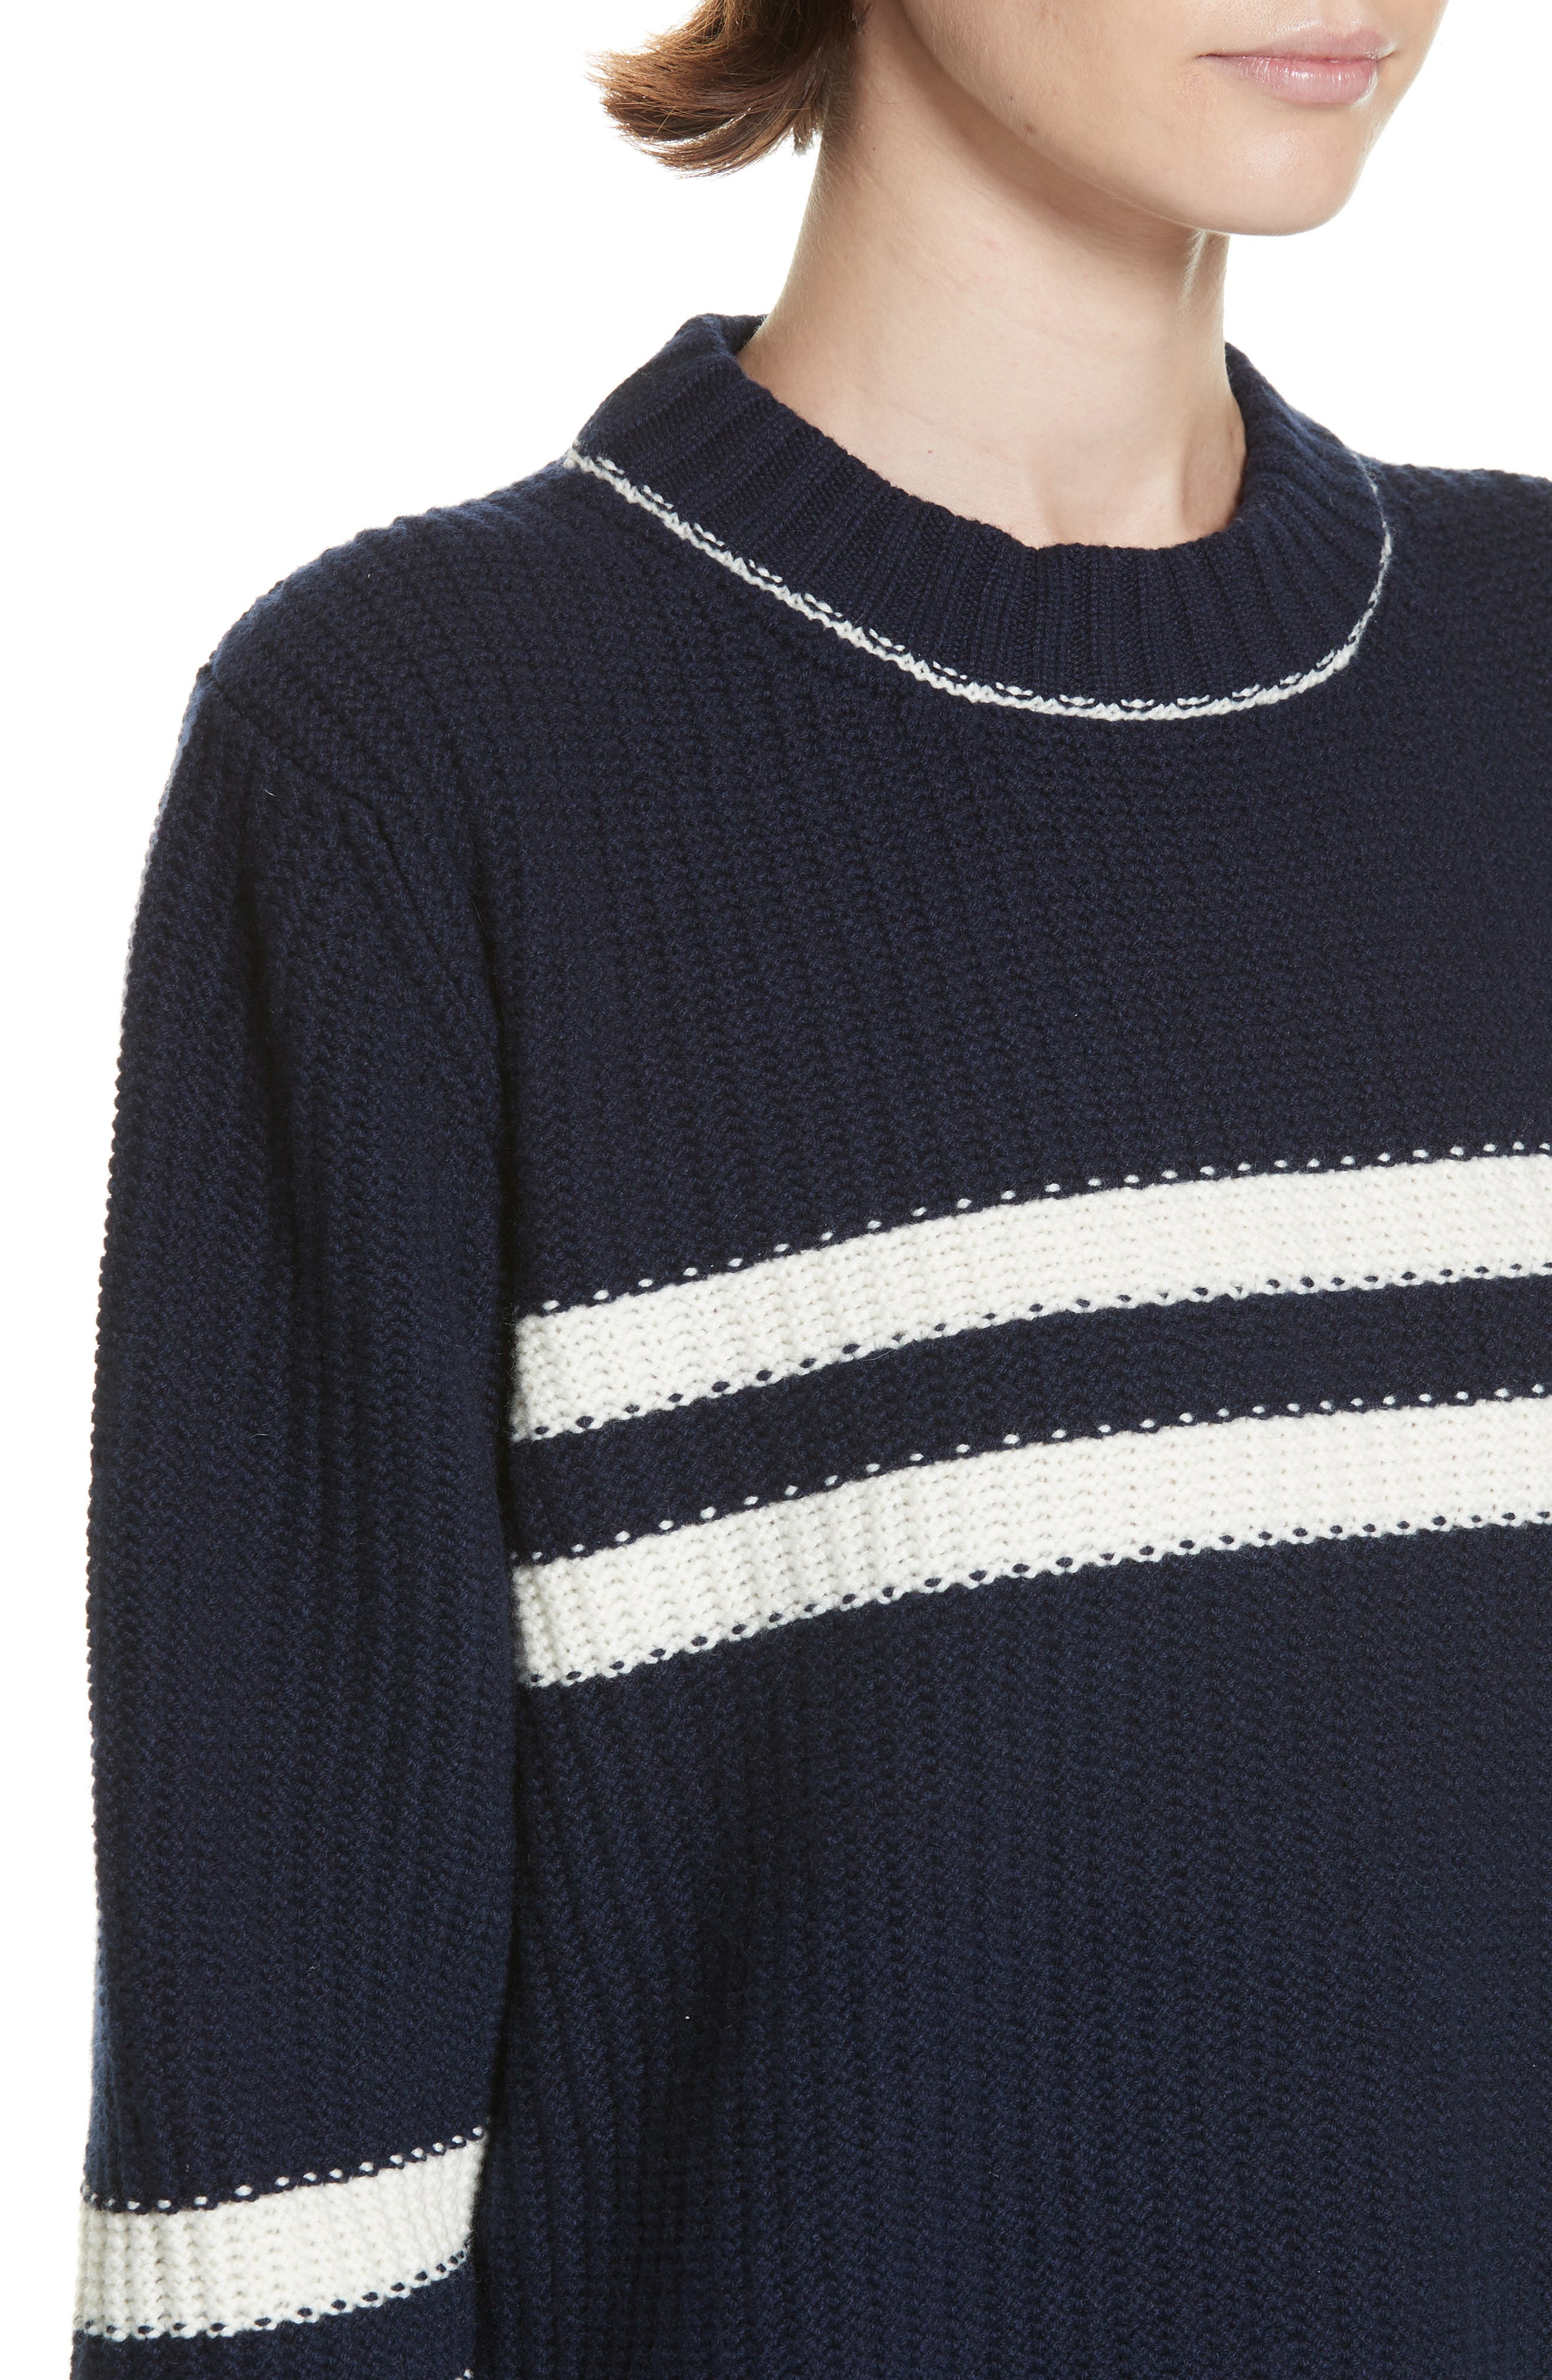 Tieve Stripe Cashmere & Cotton Sweater,                             Alternate thumbnail 4, color,                             NAVY/ ECRU